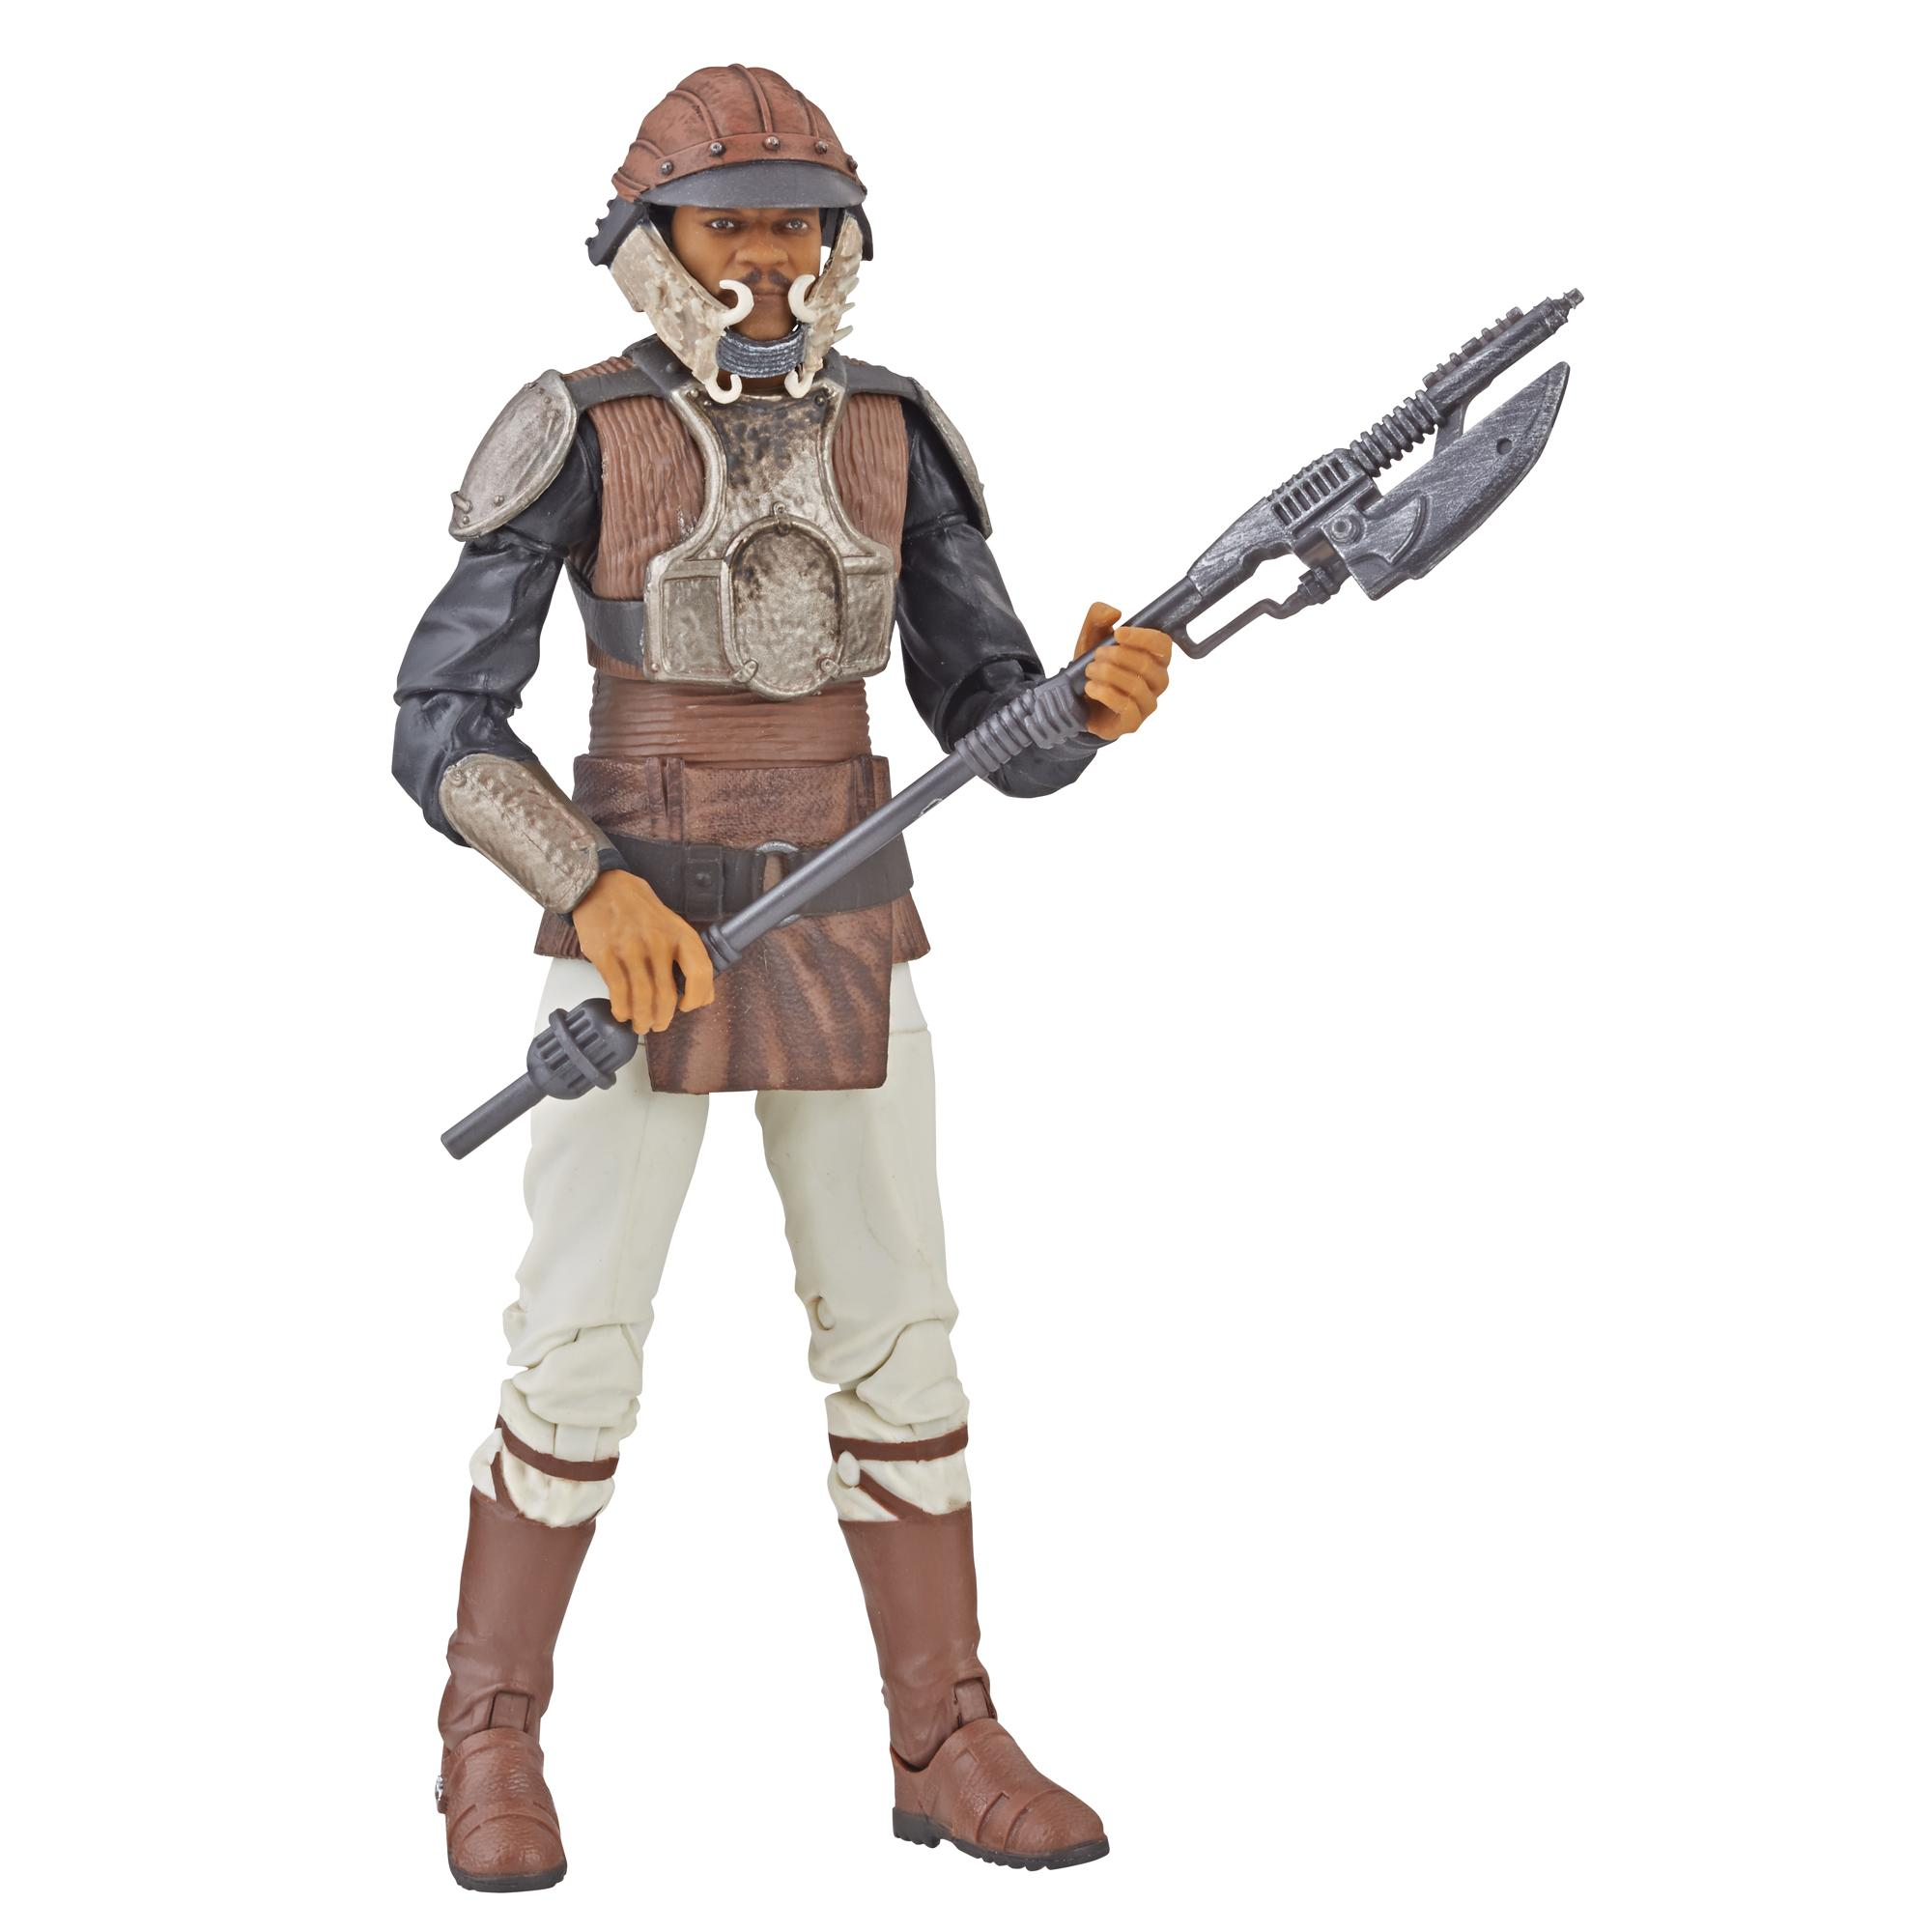 Star Wars The Black Series 6-inch Lando Calrissian (Skiff Guard Disguise) figure